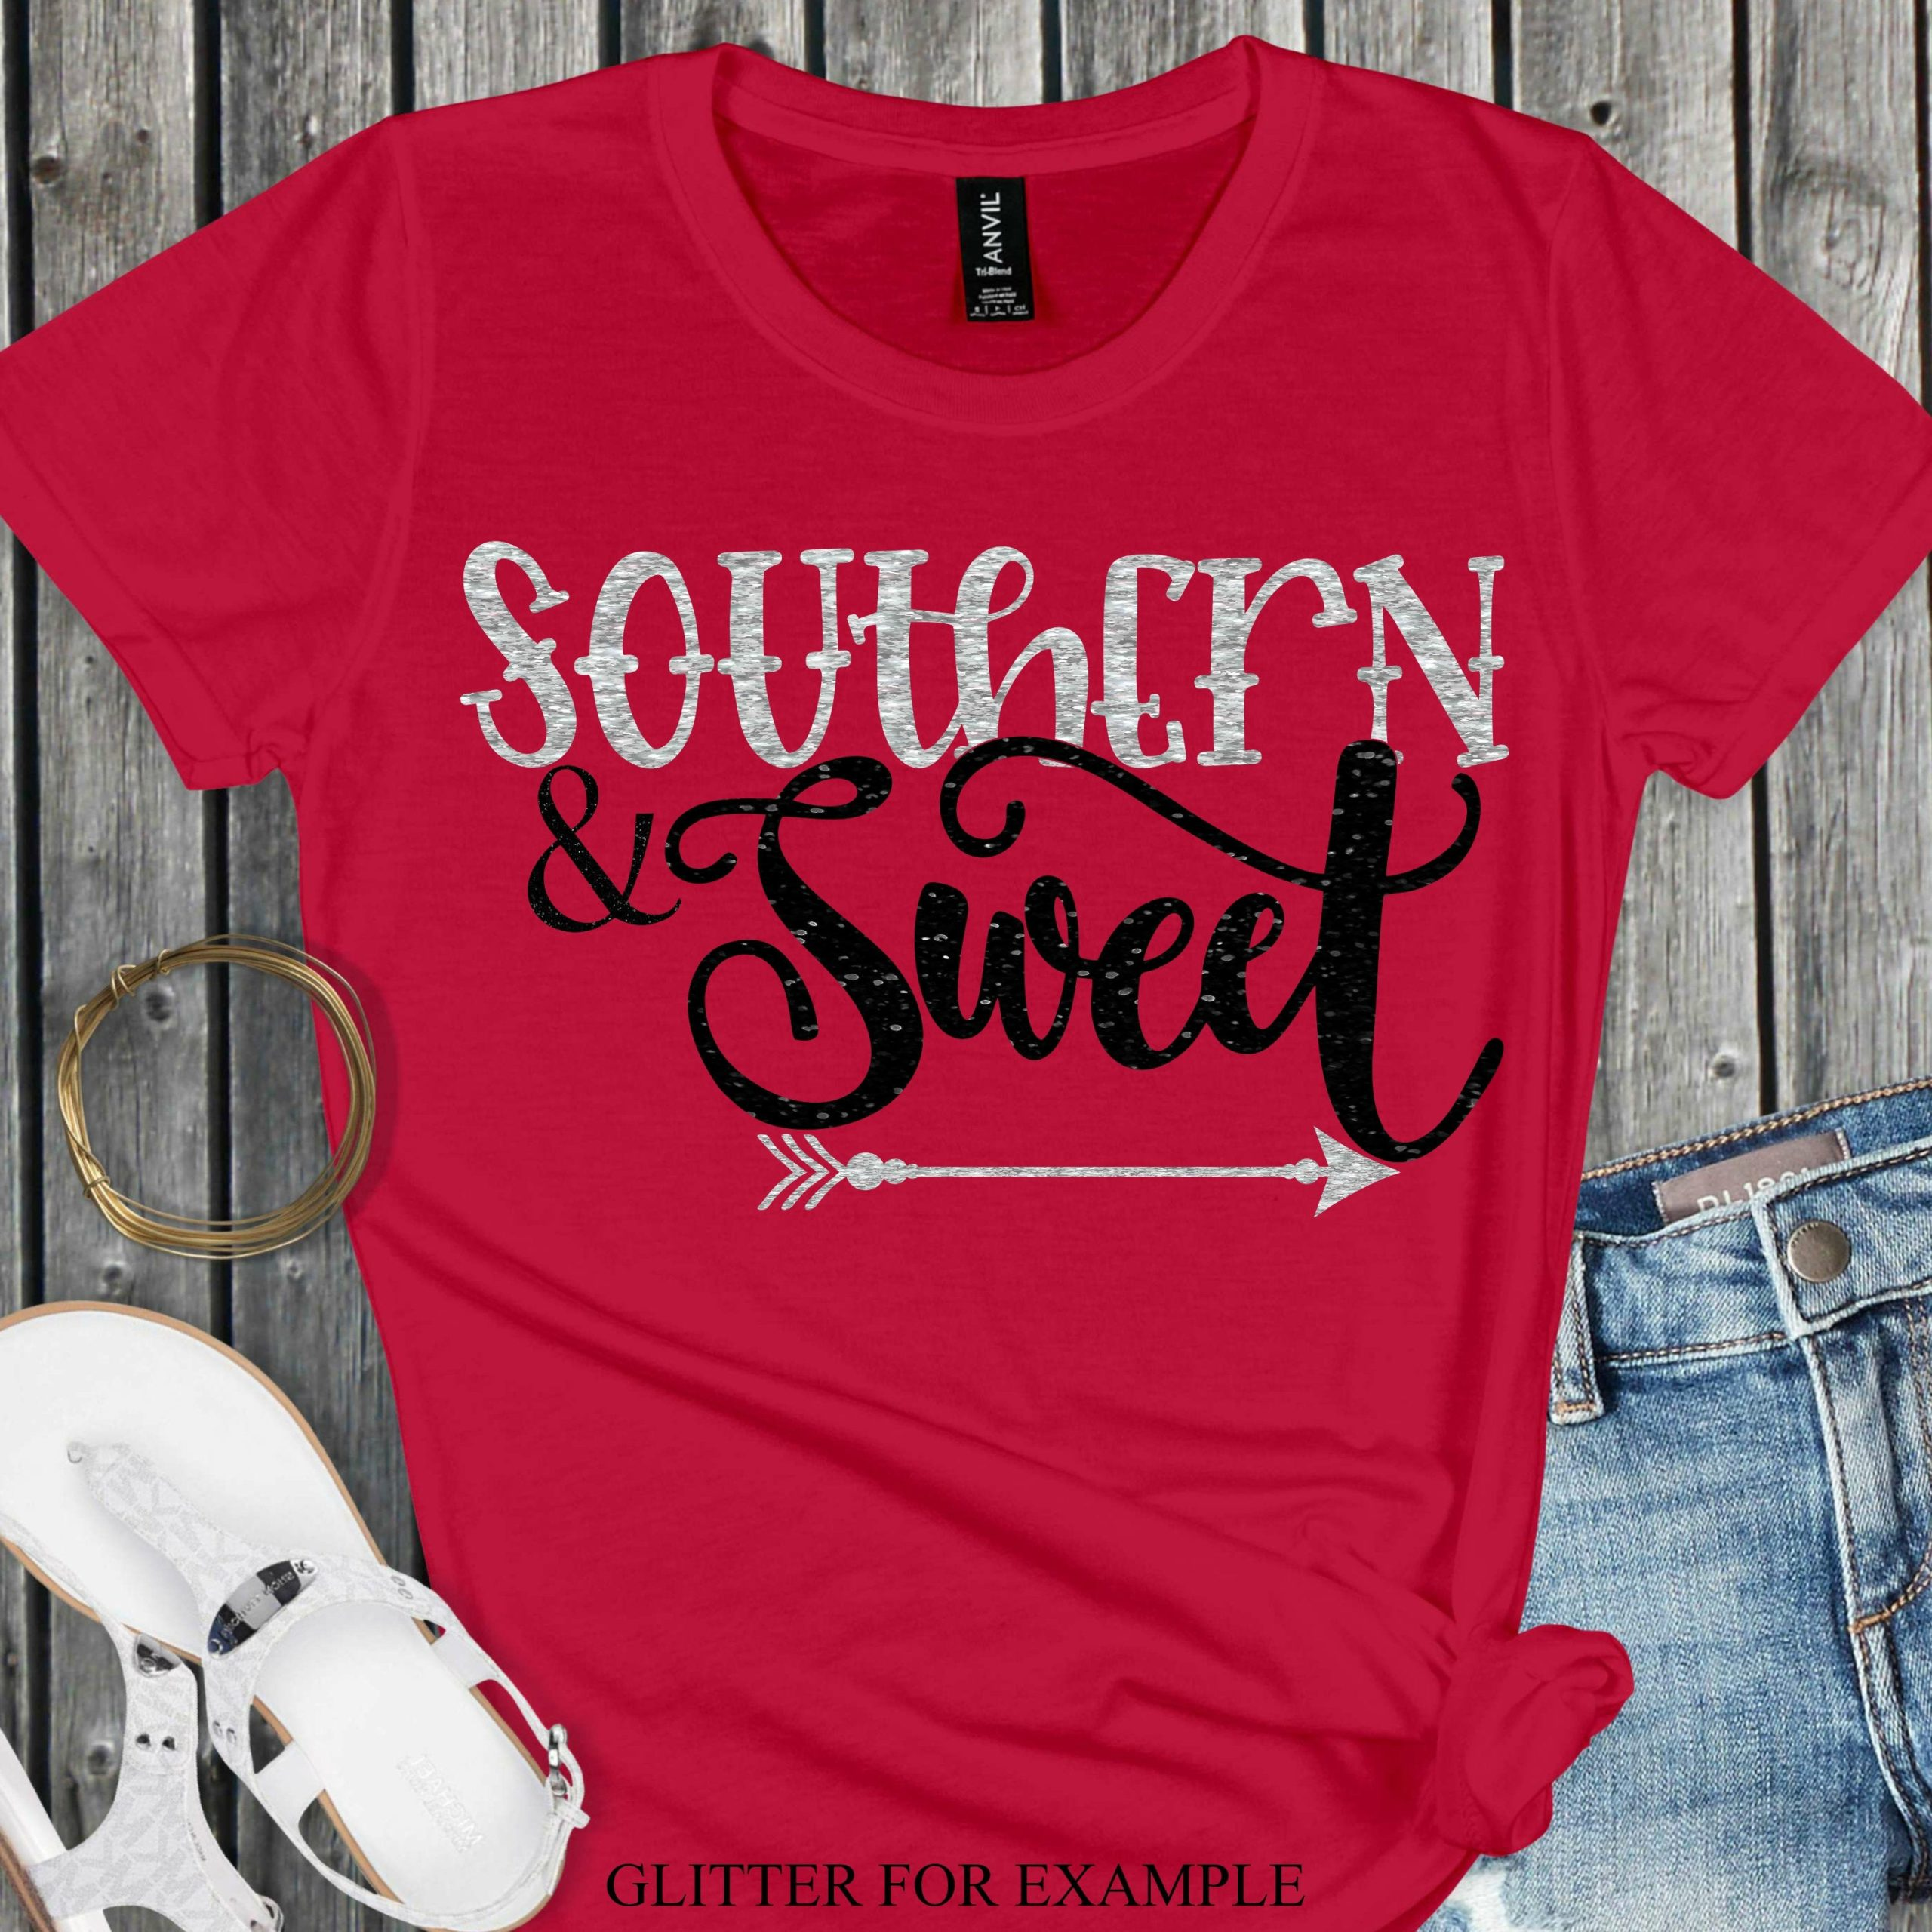 Southern-and-sweet-svg-southern-quote-svg-southern-svg-country-svg-southern-saying-svg-svg-for-cricut-silhouette-cut-file-5ef78f14